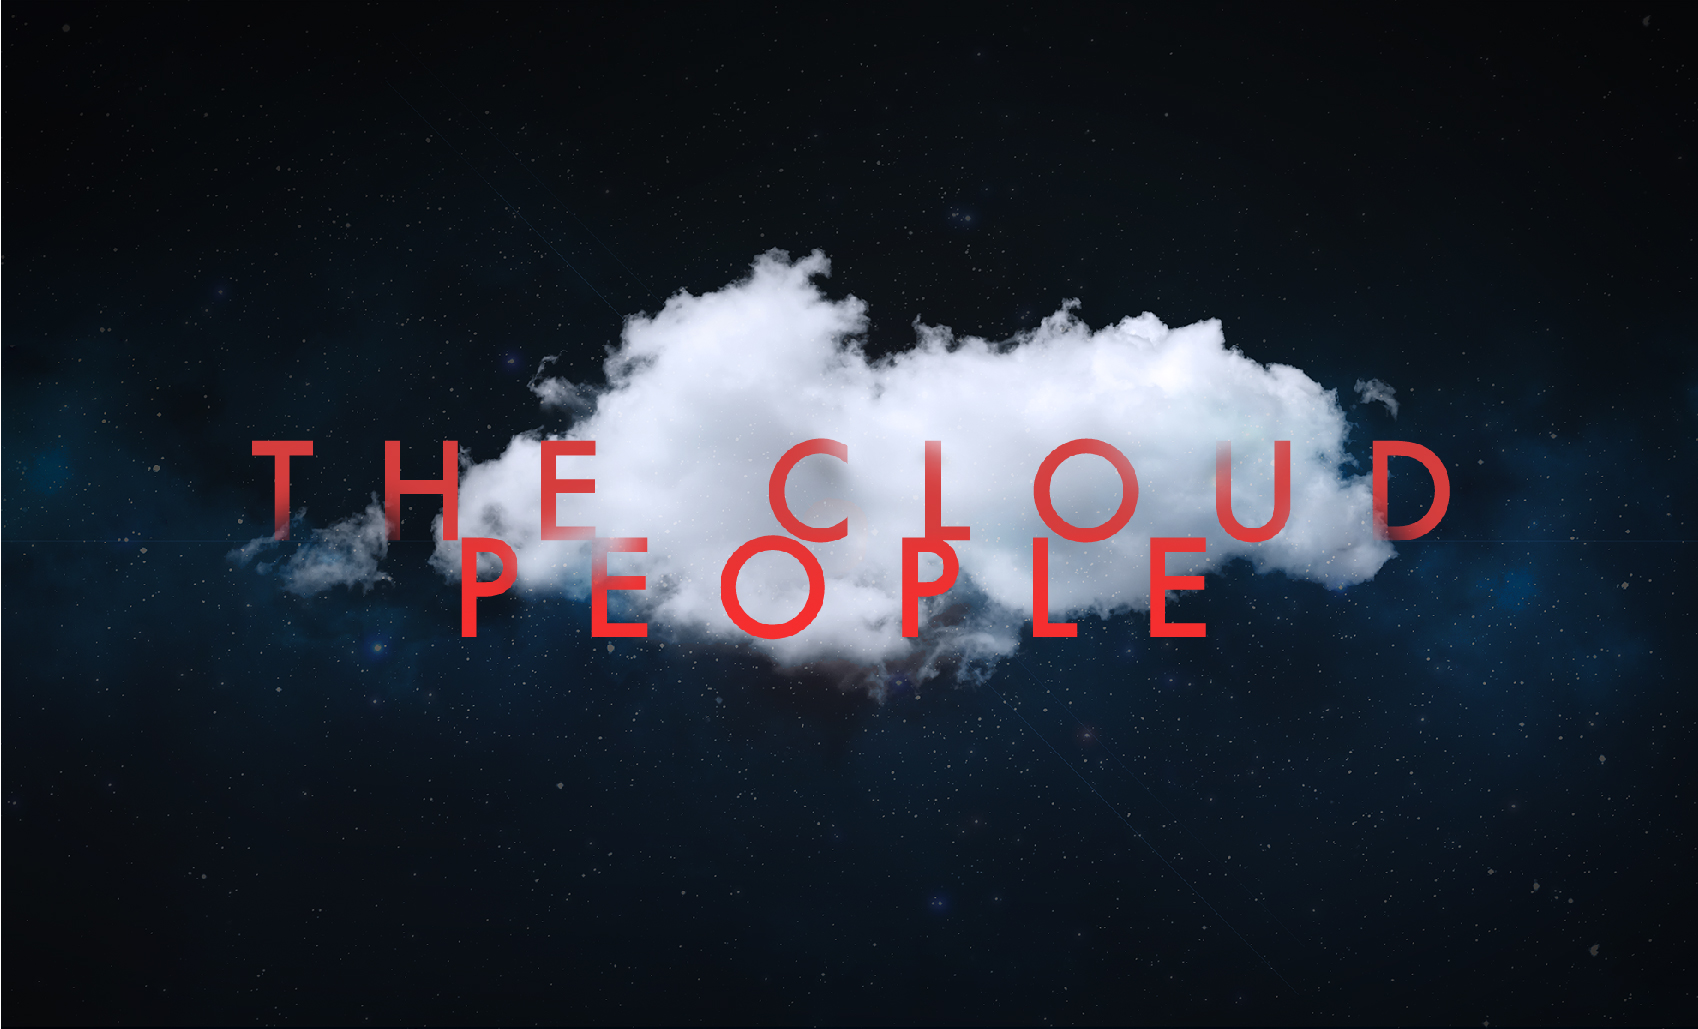 The Cloud People pt. 2